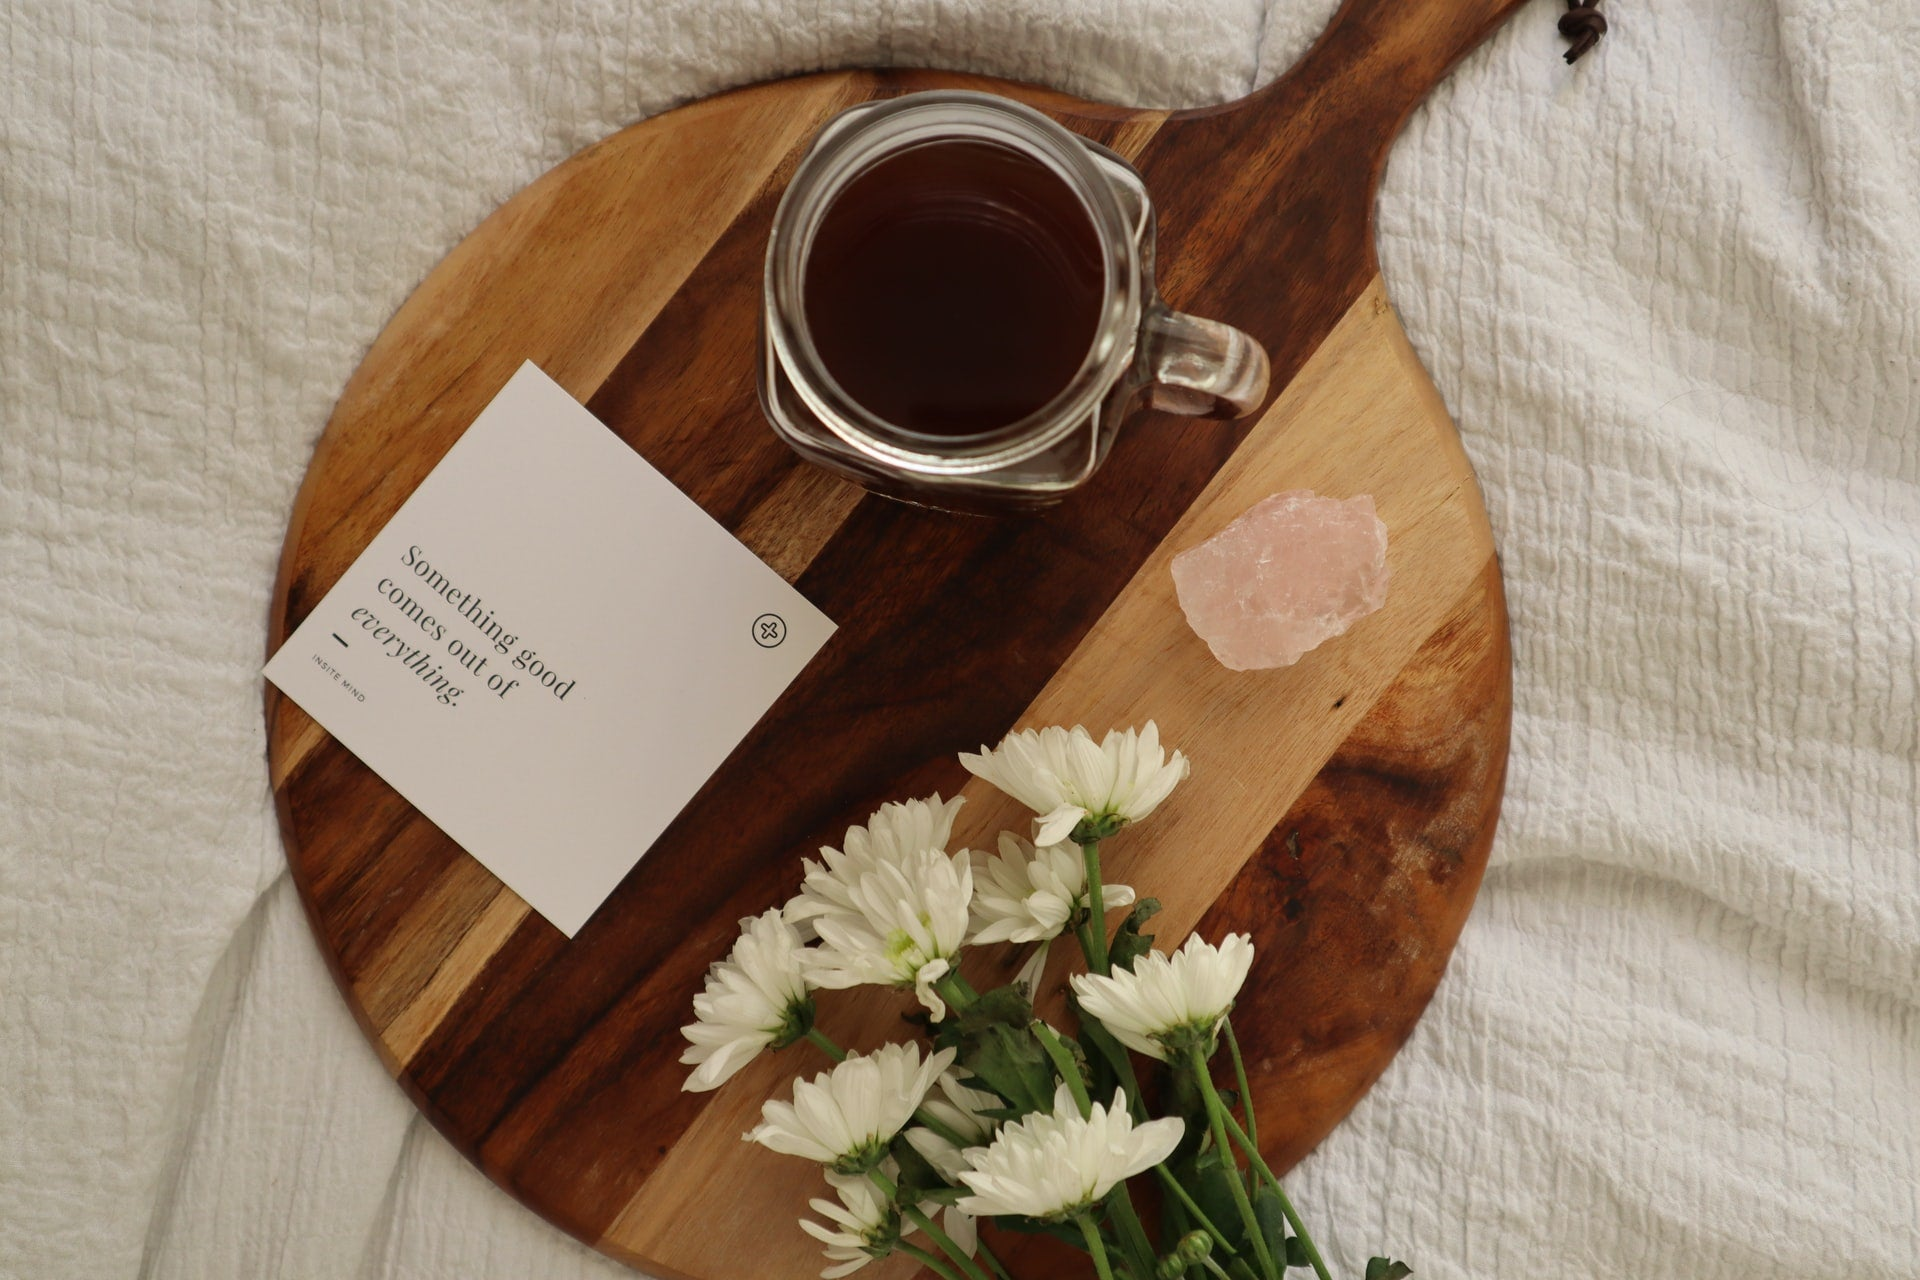 A positive affirmation card sitting beside a cup of tea and flowers.